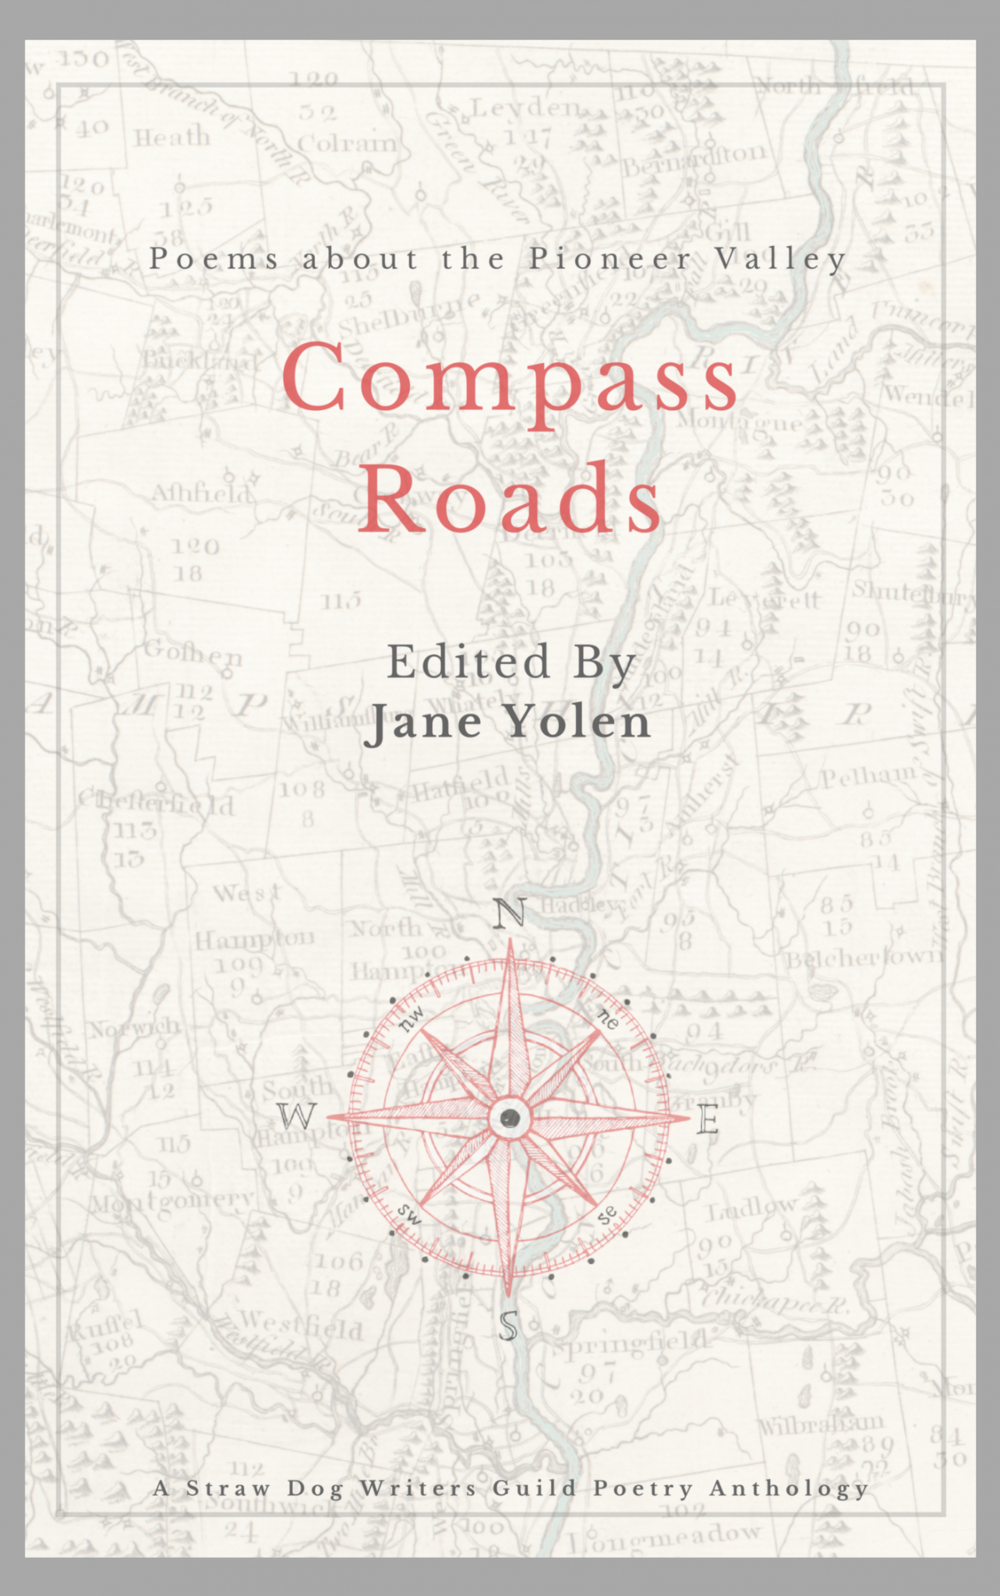 COMPASS-ROADS-COVER-FINAL-for-website-2-1.png